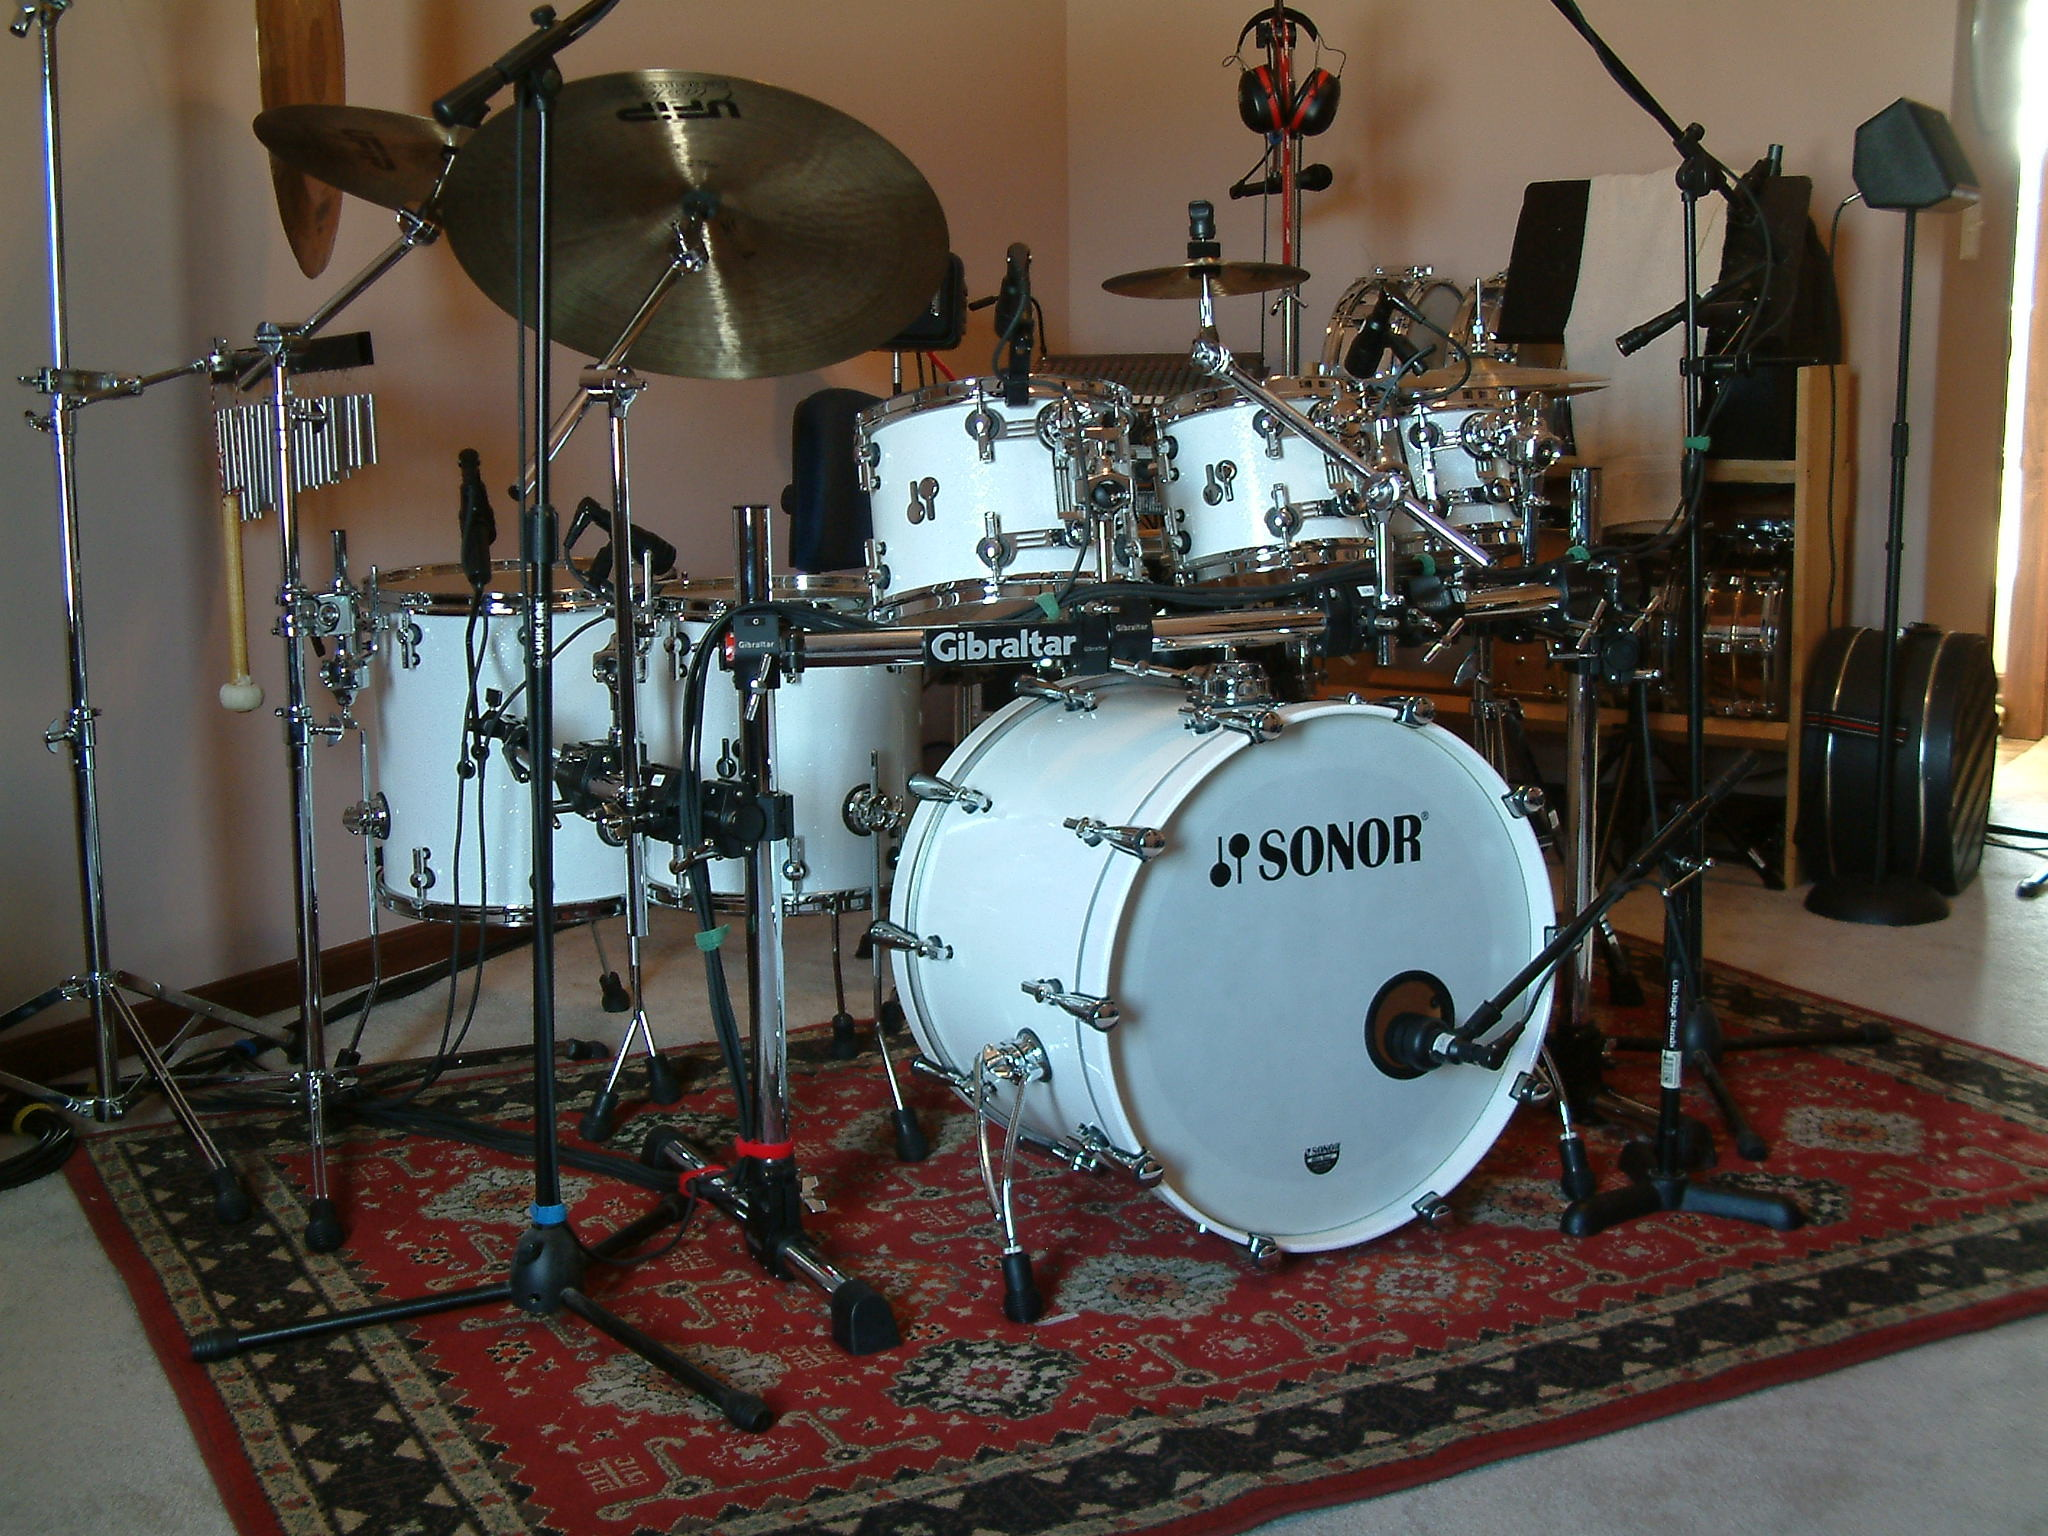 2048x1536 sonor drums wallpaper - Google Search